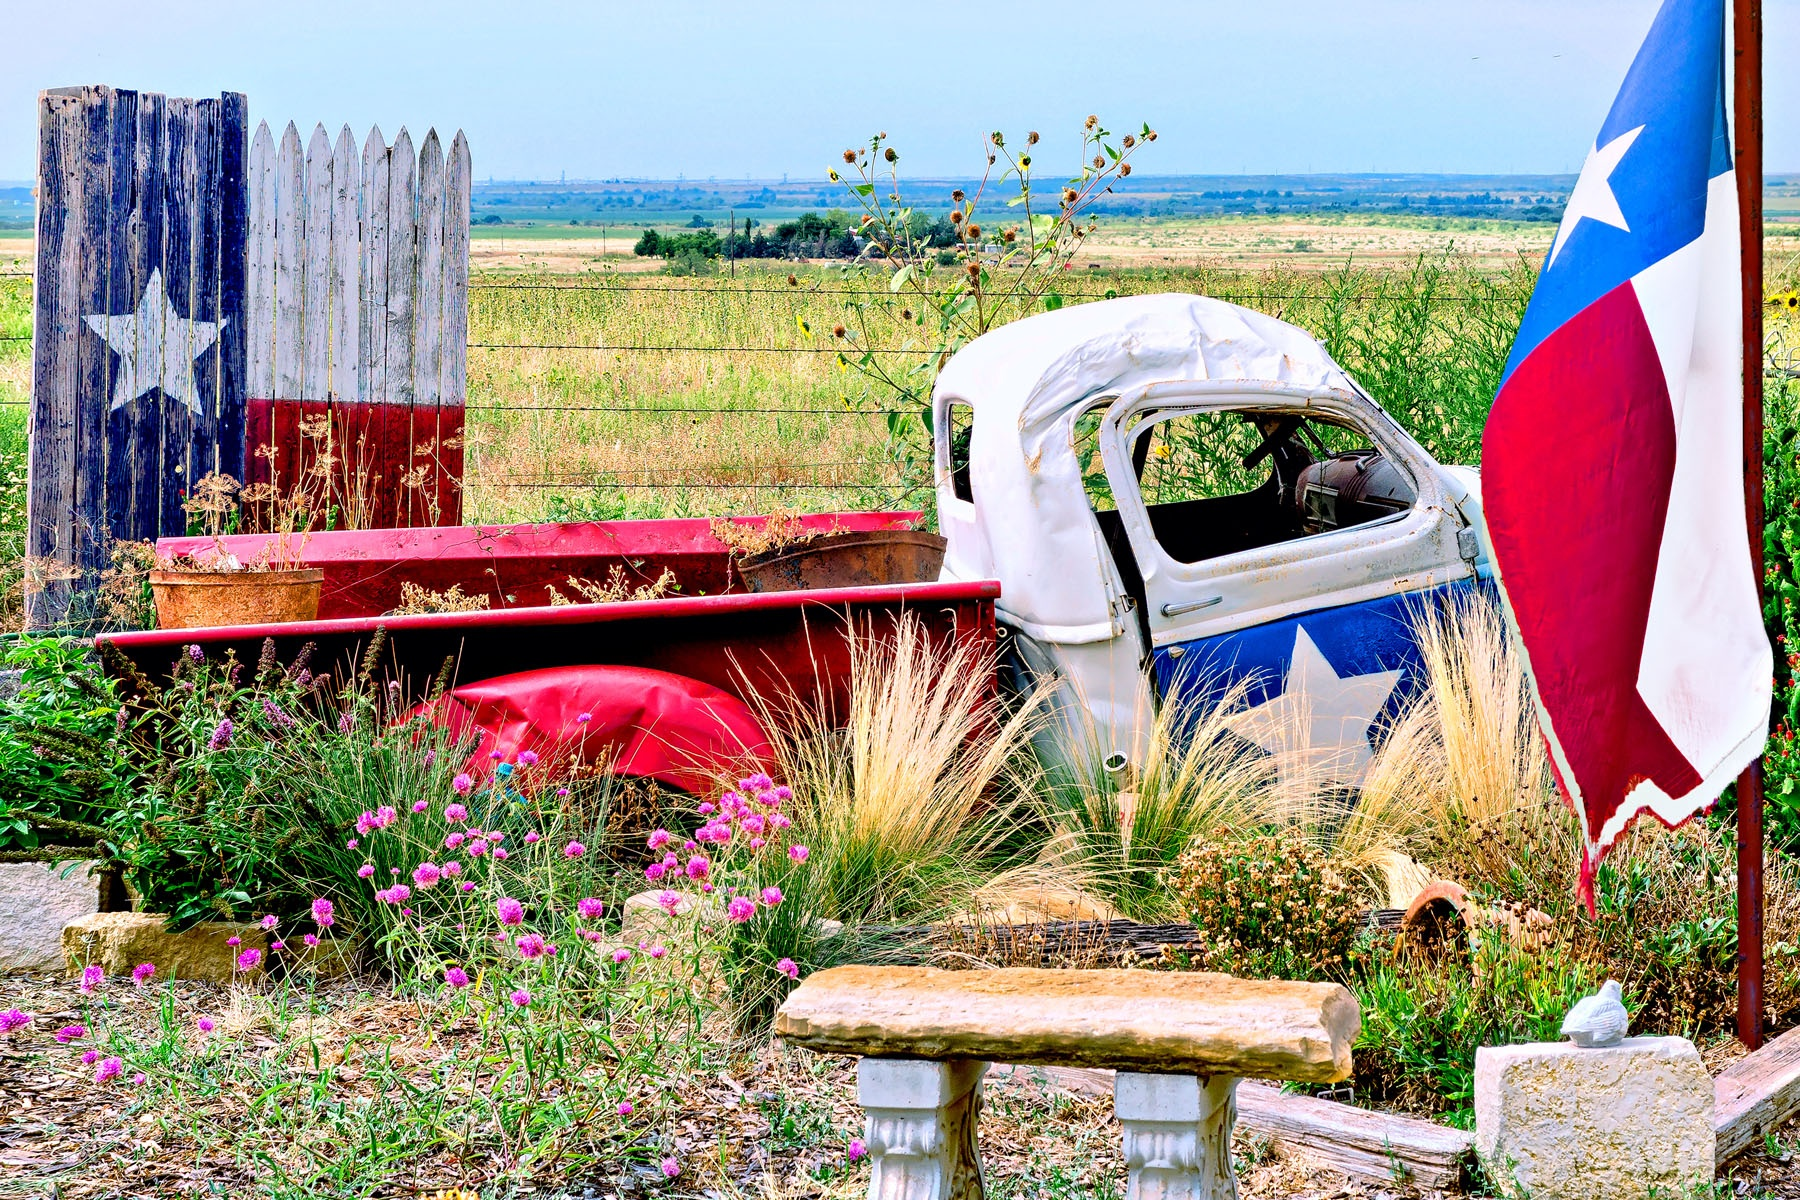 OLE' TEX - That was the name of this old truck used as a garden sculpture at the entrance to a ranch in Texas.